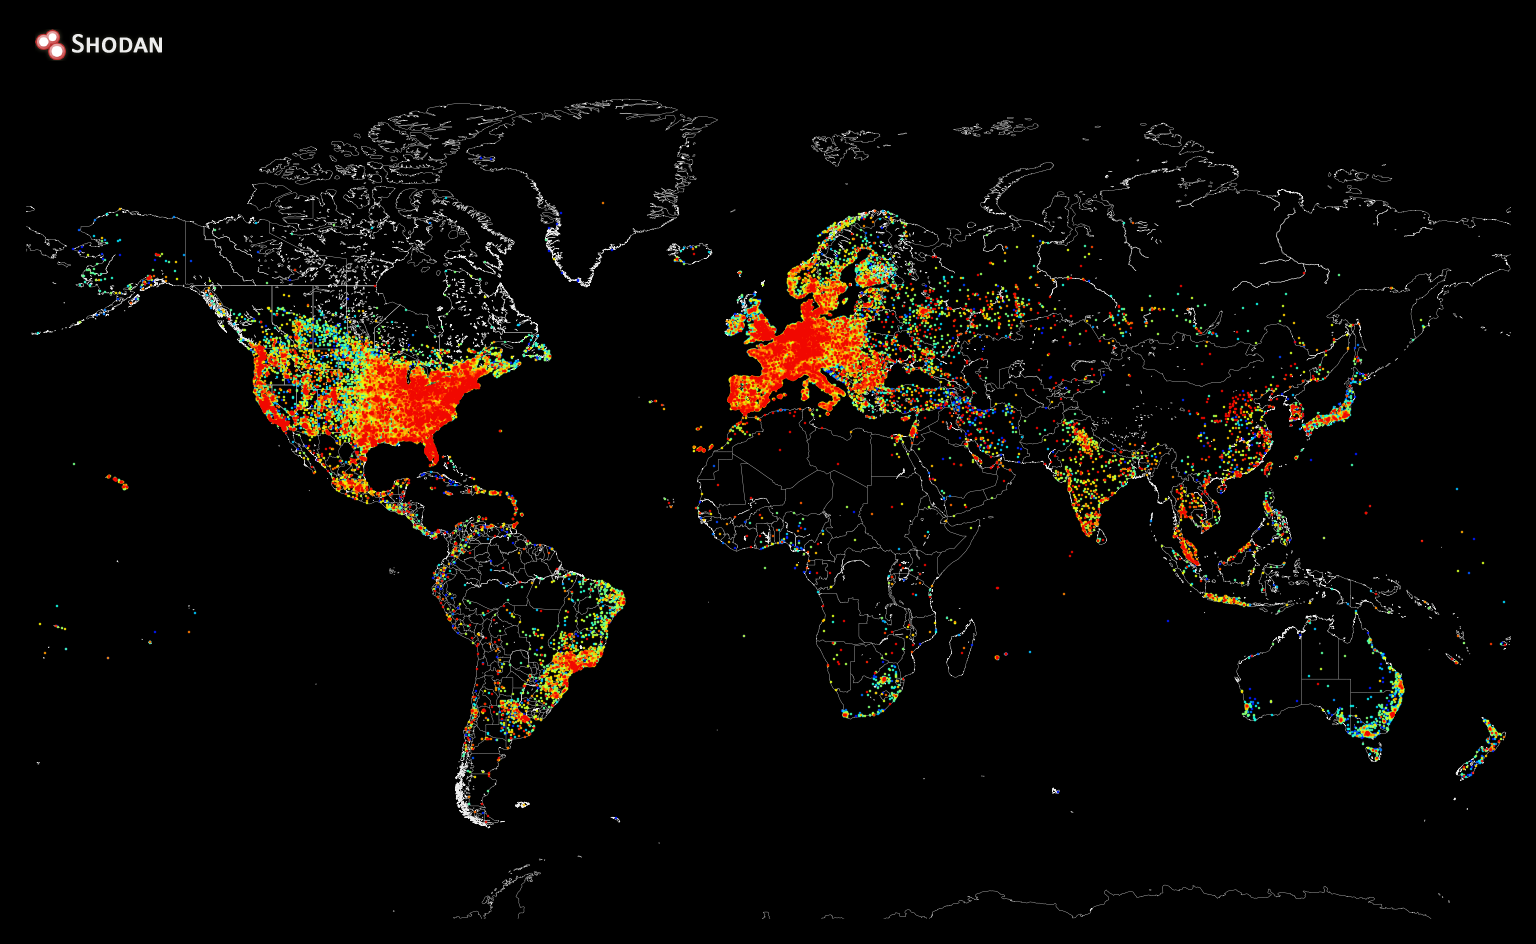 The location of every Internet connected device in the world.